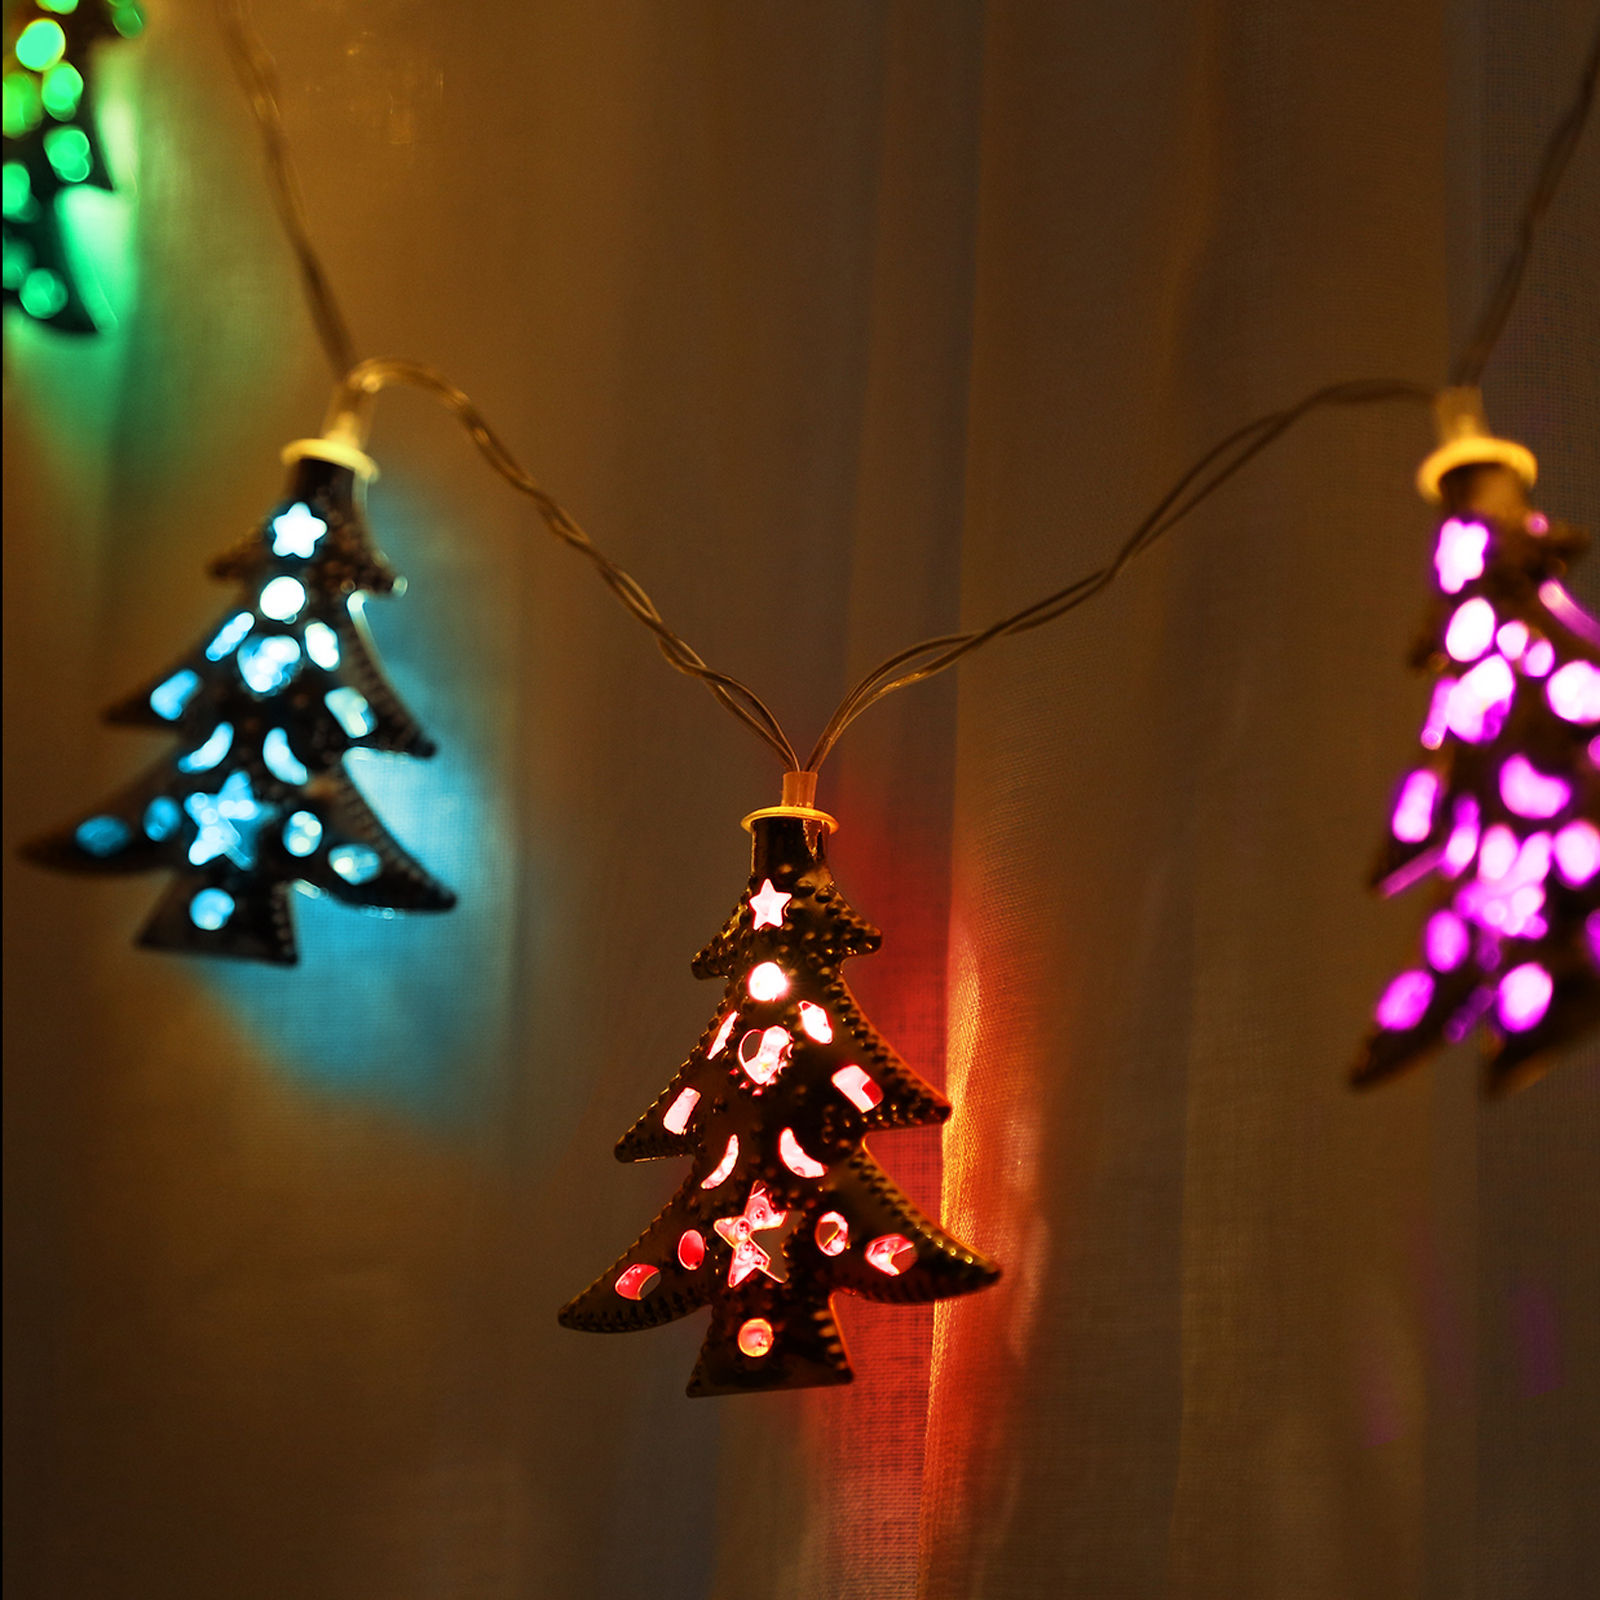 10 led 3m fairy lighting christmas party string lights christmas tree decor lamp